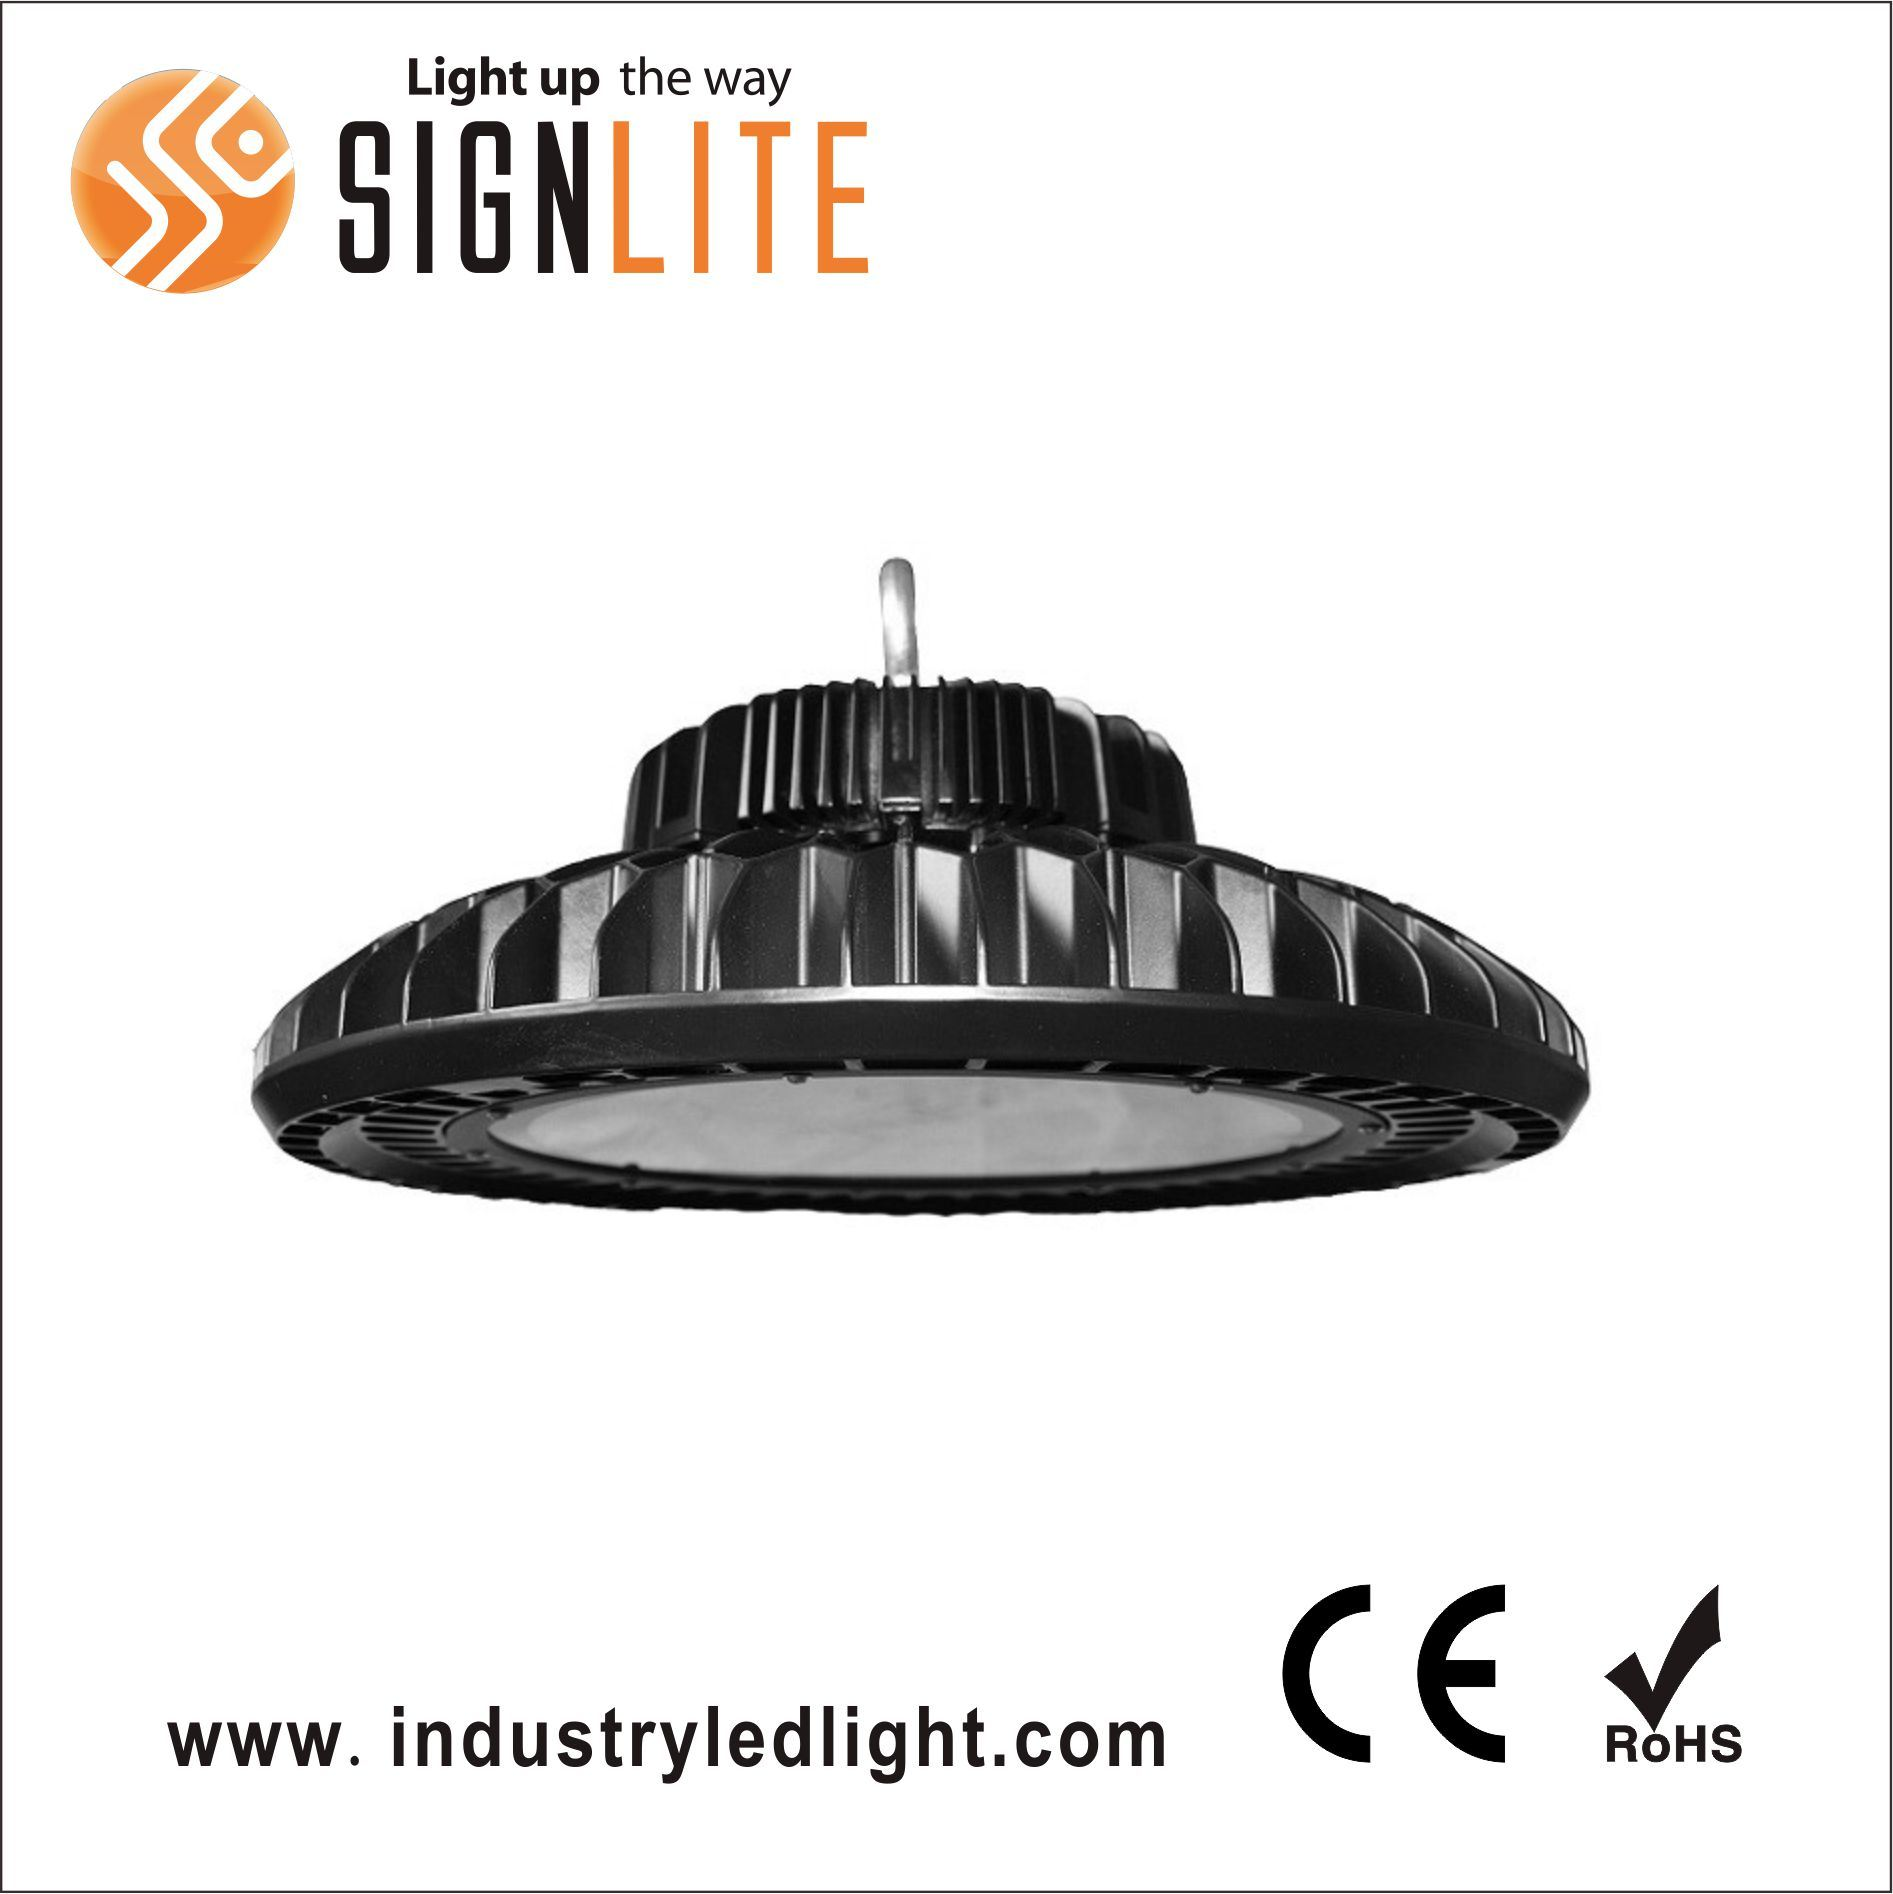 China hot sale industrial lighting fixtures led highbay light manufacturer china high bay lights led high bay